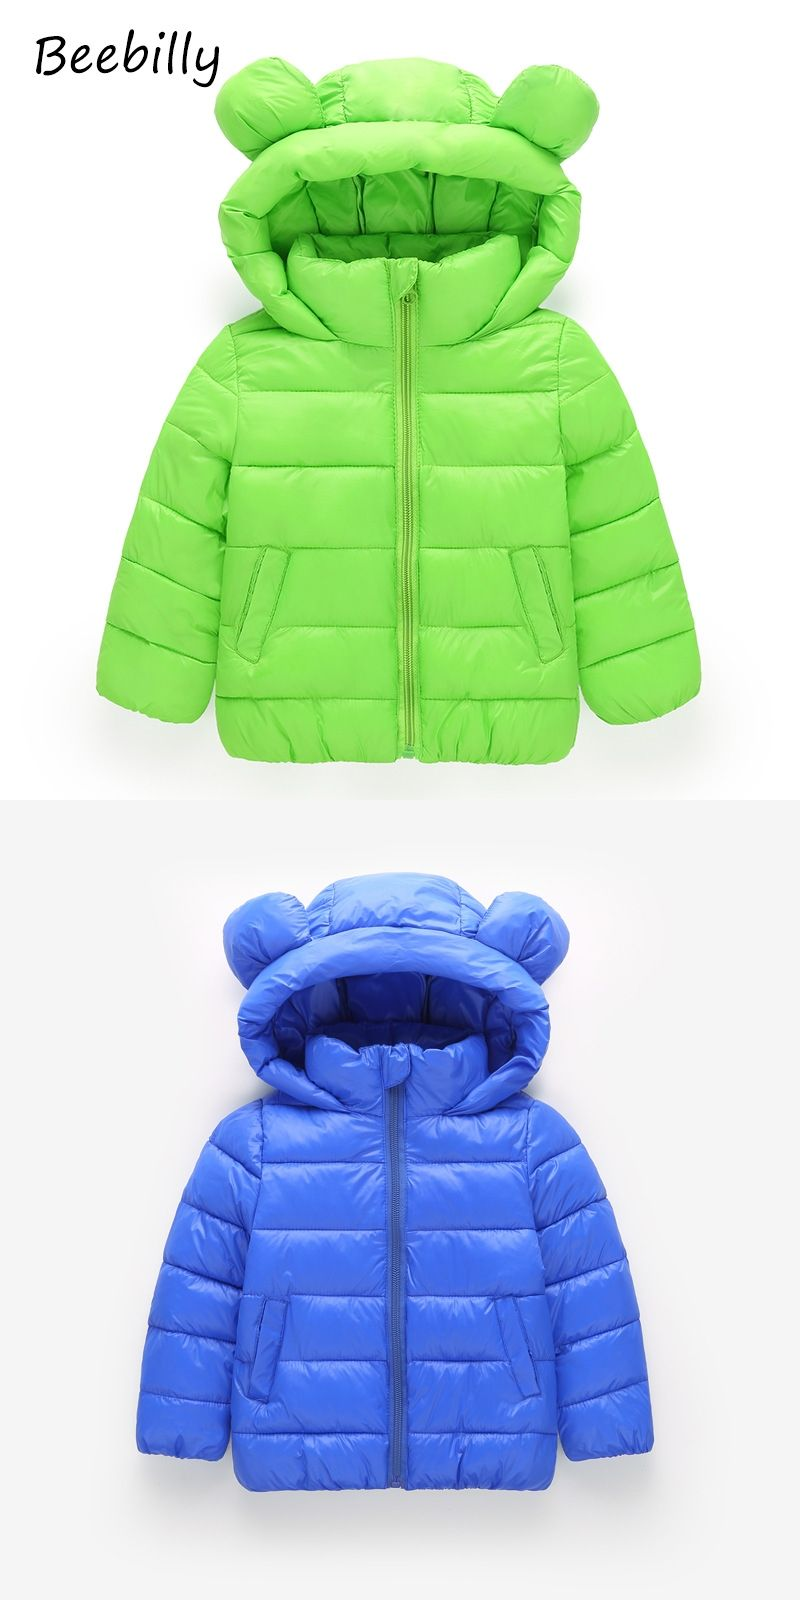 817152411381 outlet boutique 74016 9b64b beebilly girls winter jackets boys ...